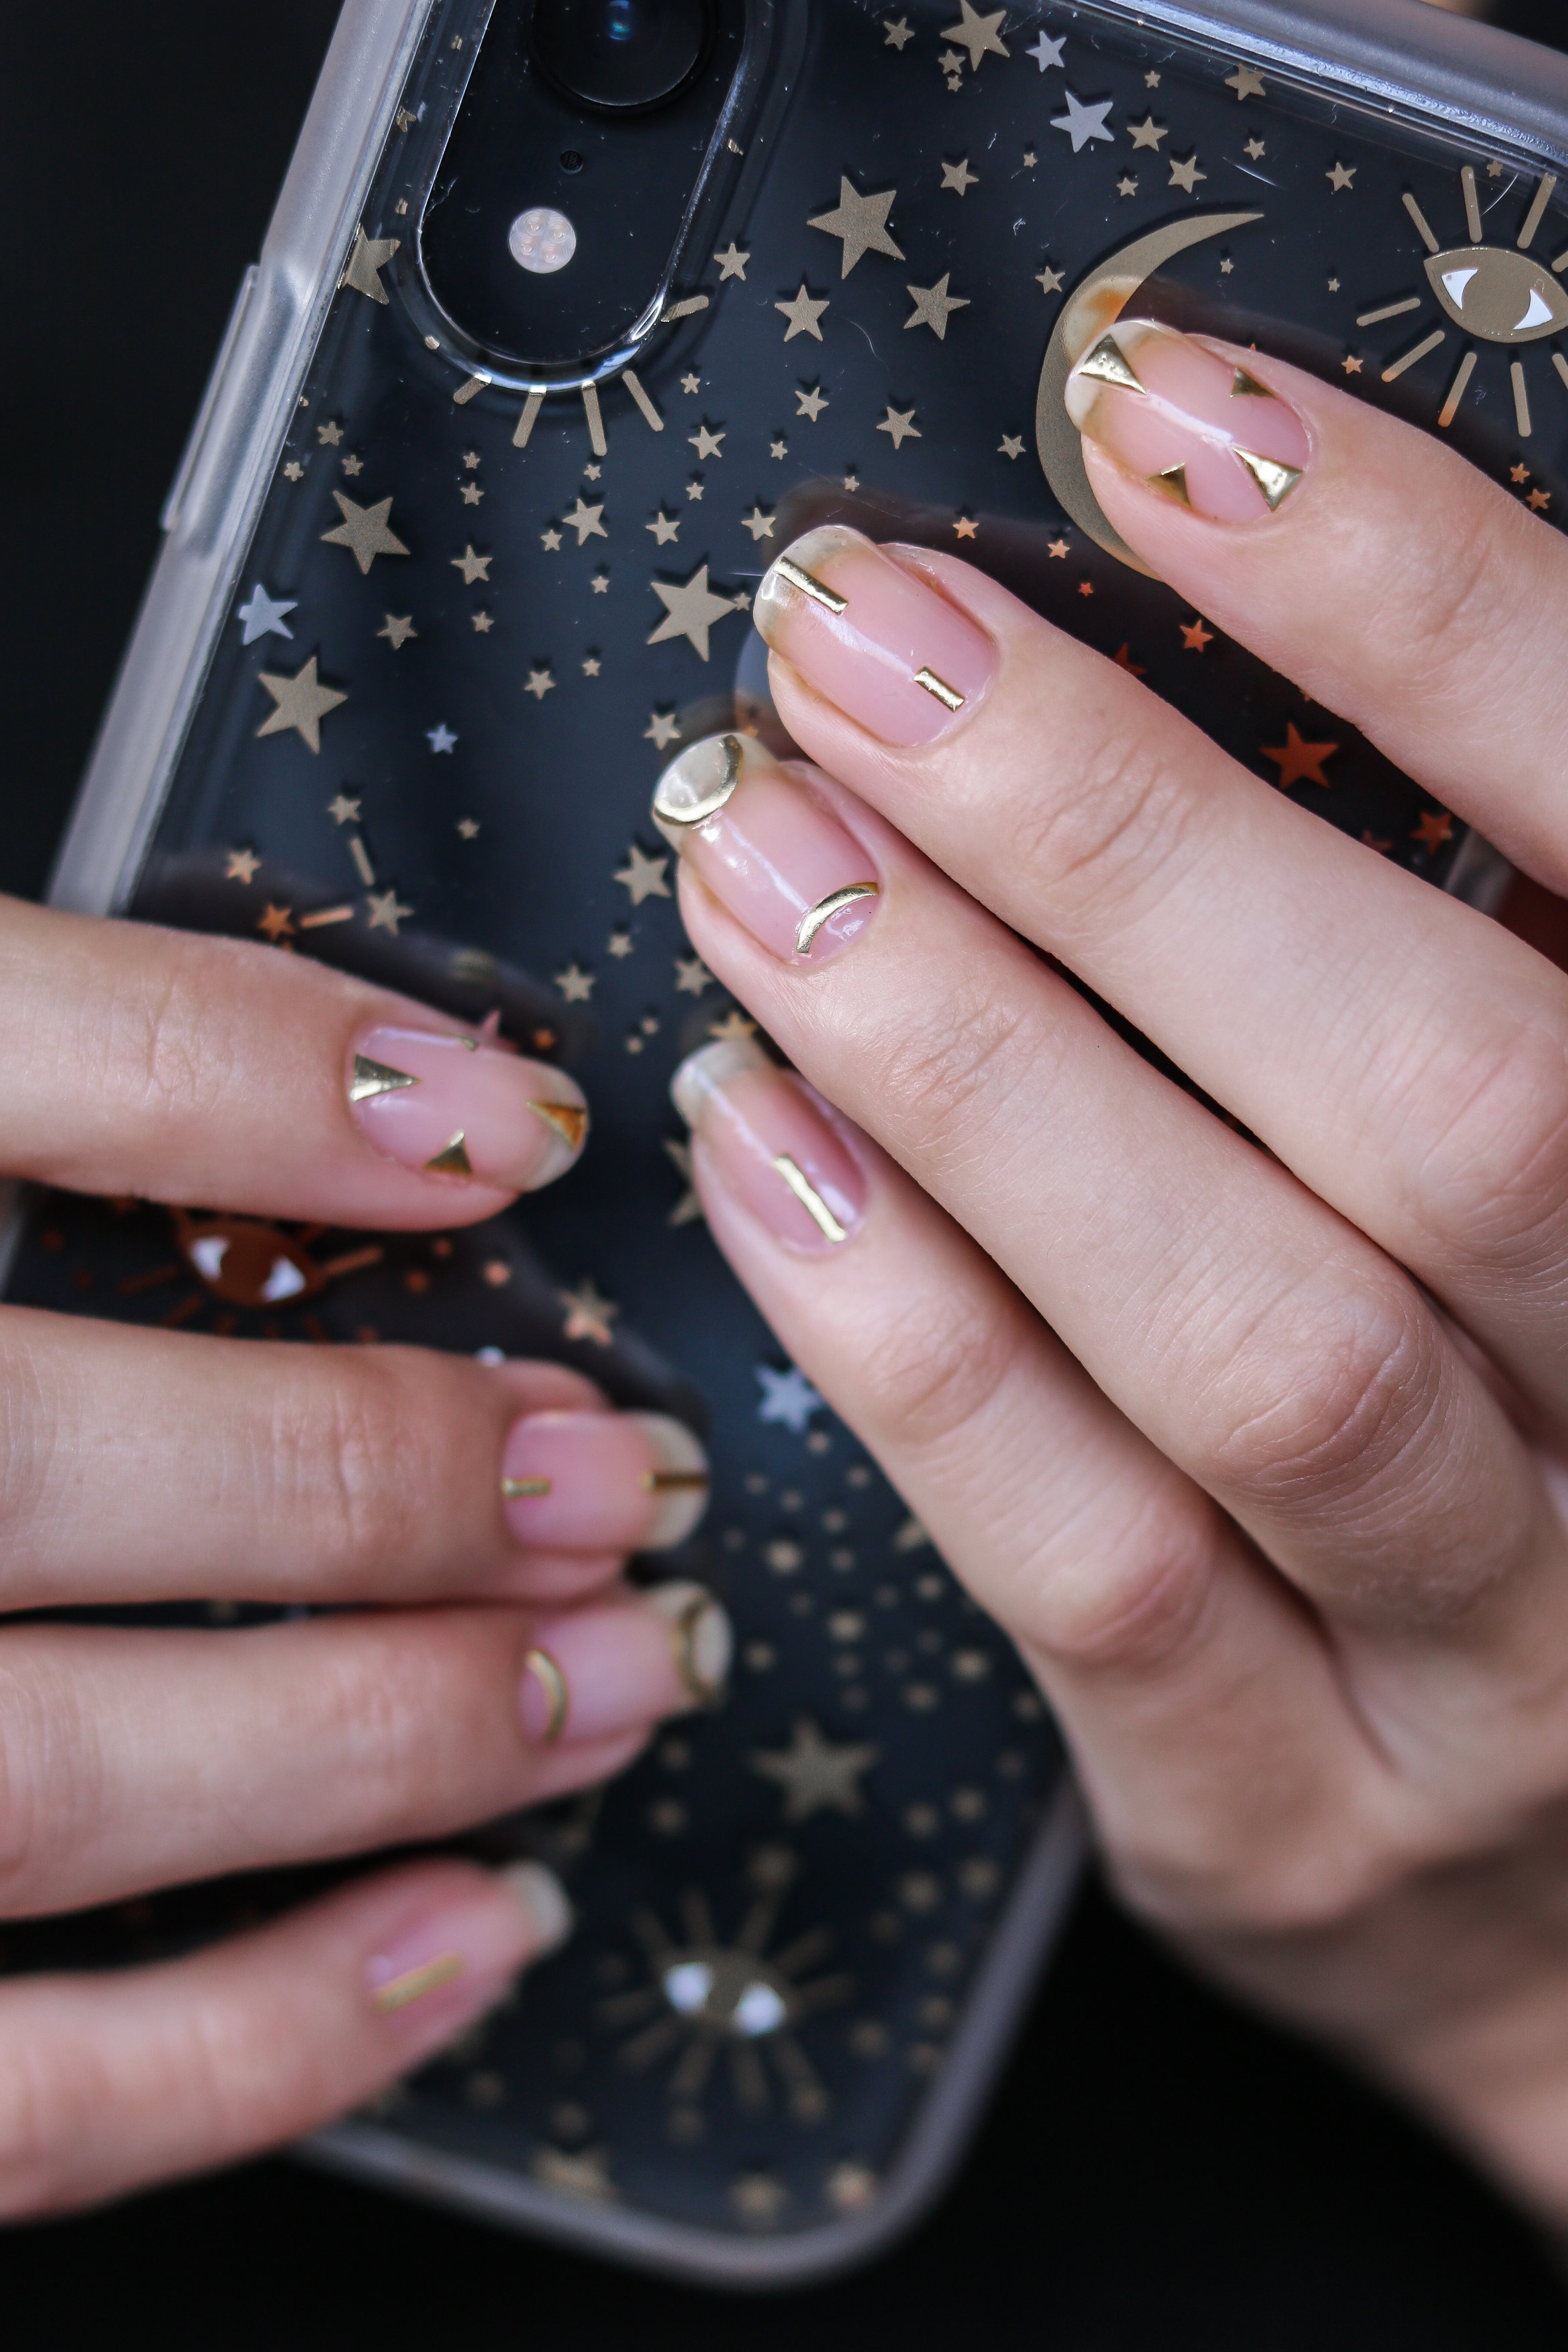 The+Hungarian+Brunette+Minimal+Negative+space+manicure+with+gold+geometrical+accents+%281+of+8%29.jpg